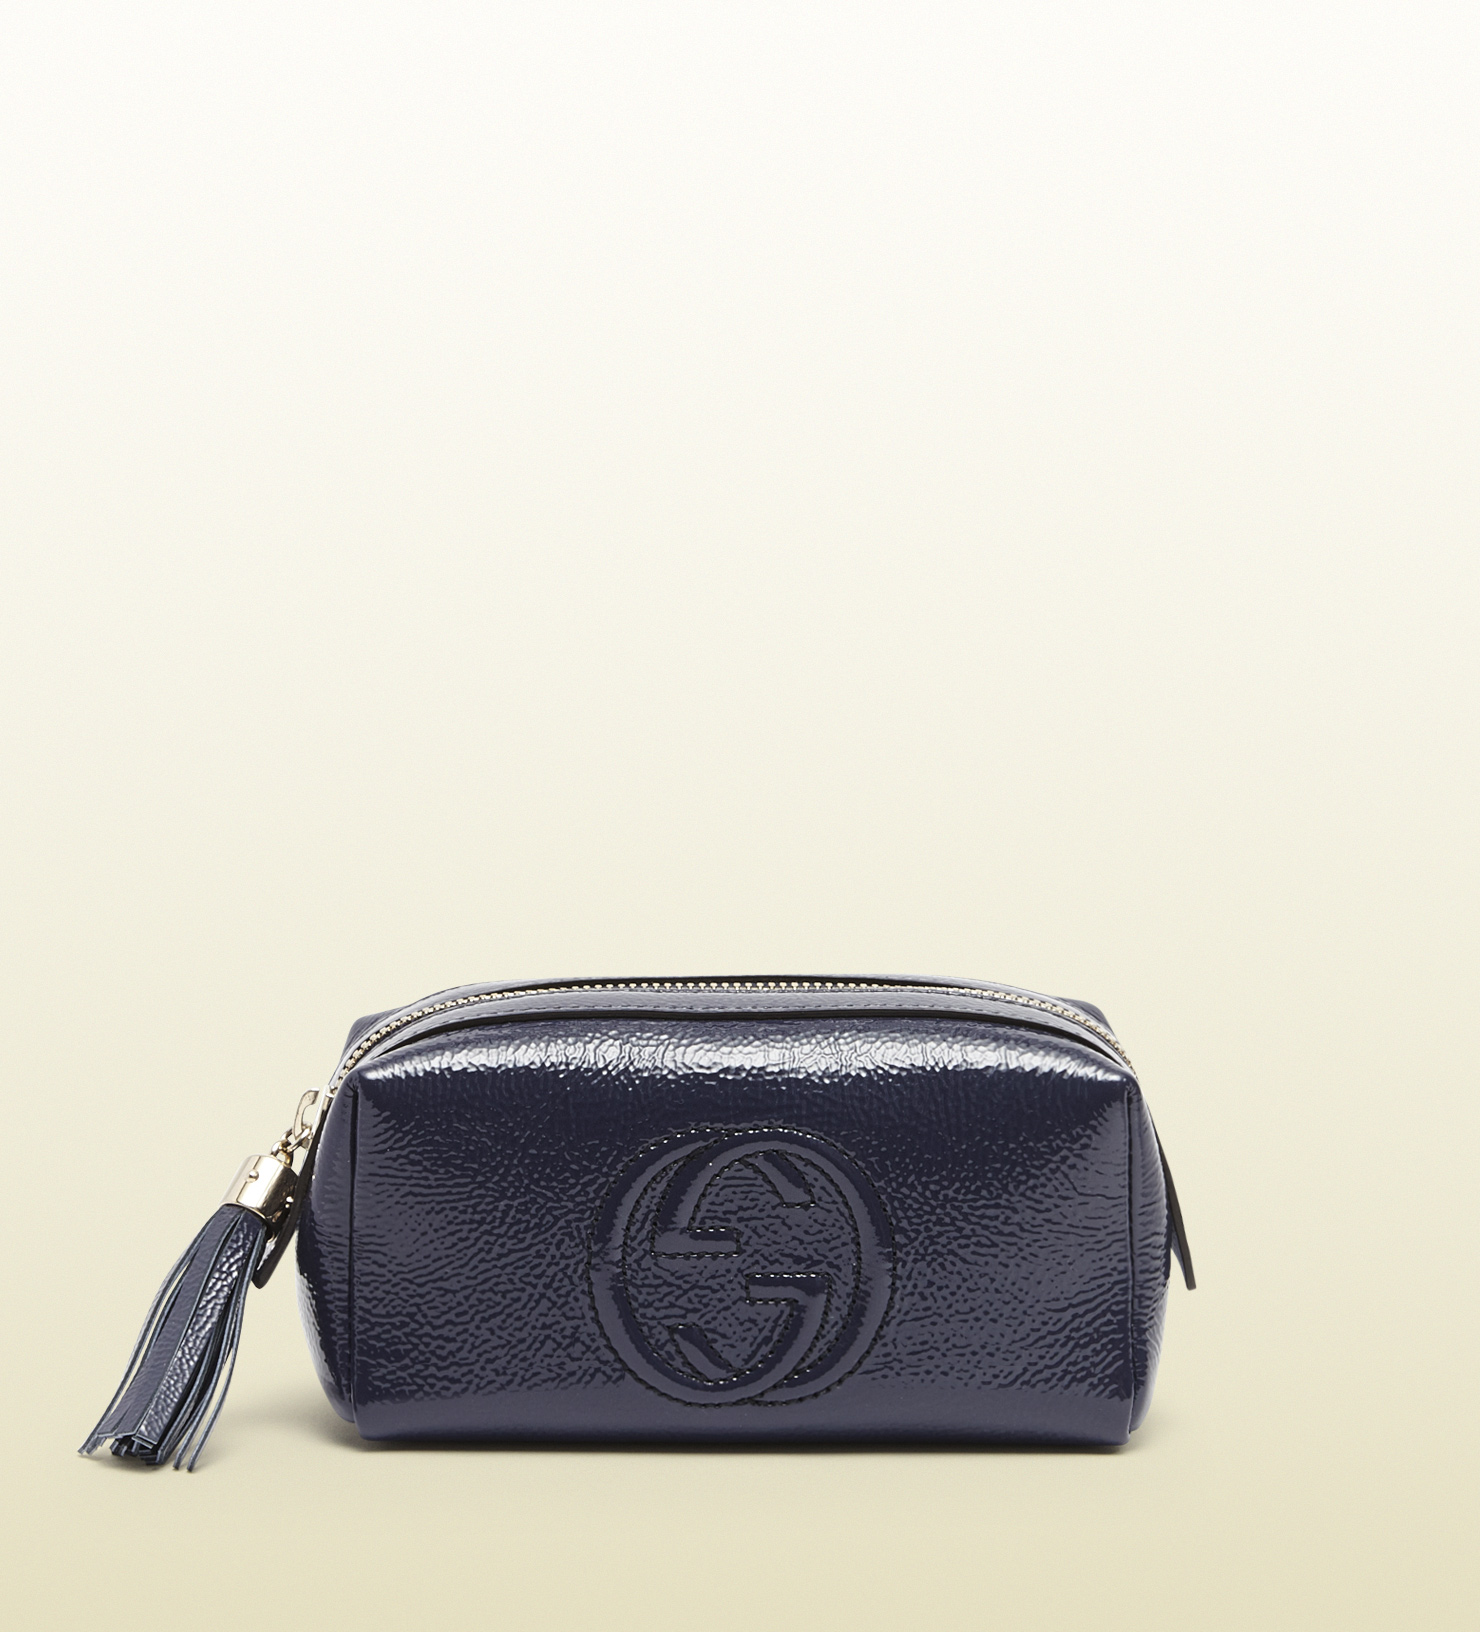 2b20ae1e69c4f8 Gucci Soho Patent Leather Cosmetic Bag in Blue - Lyst